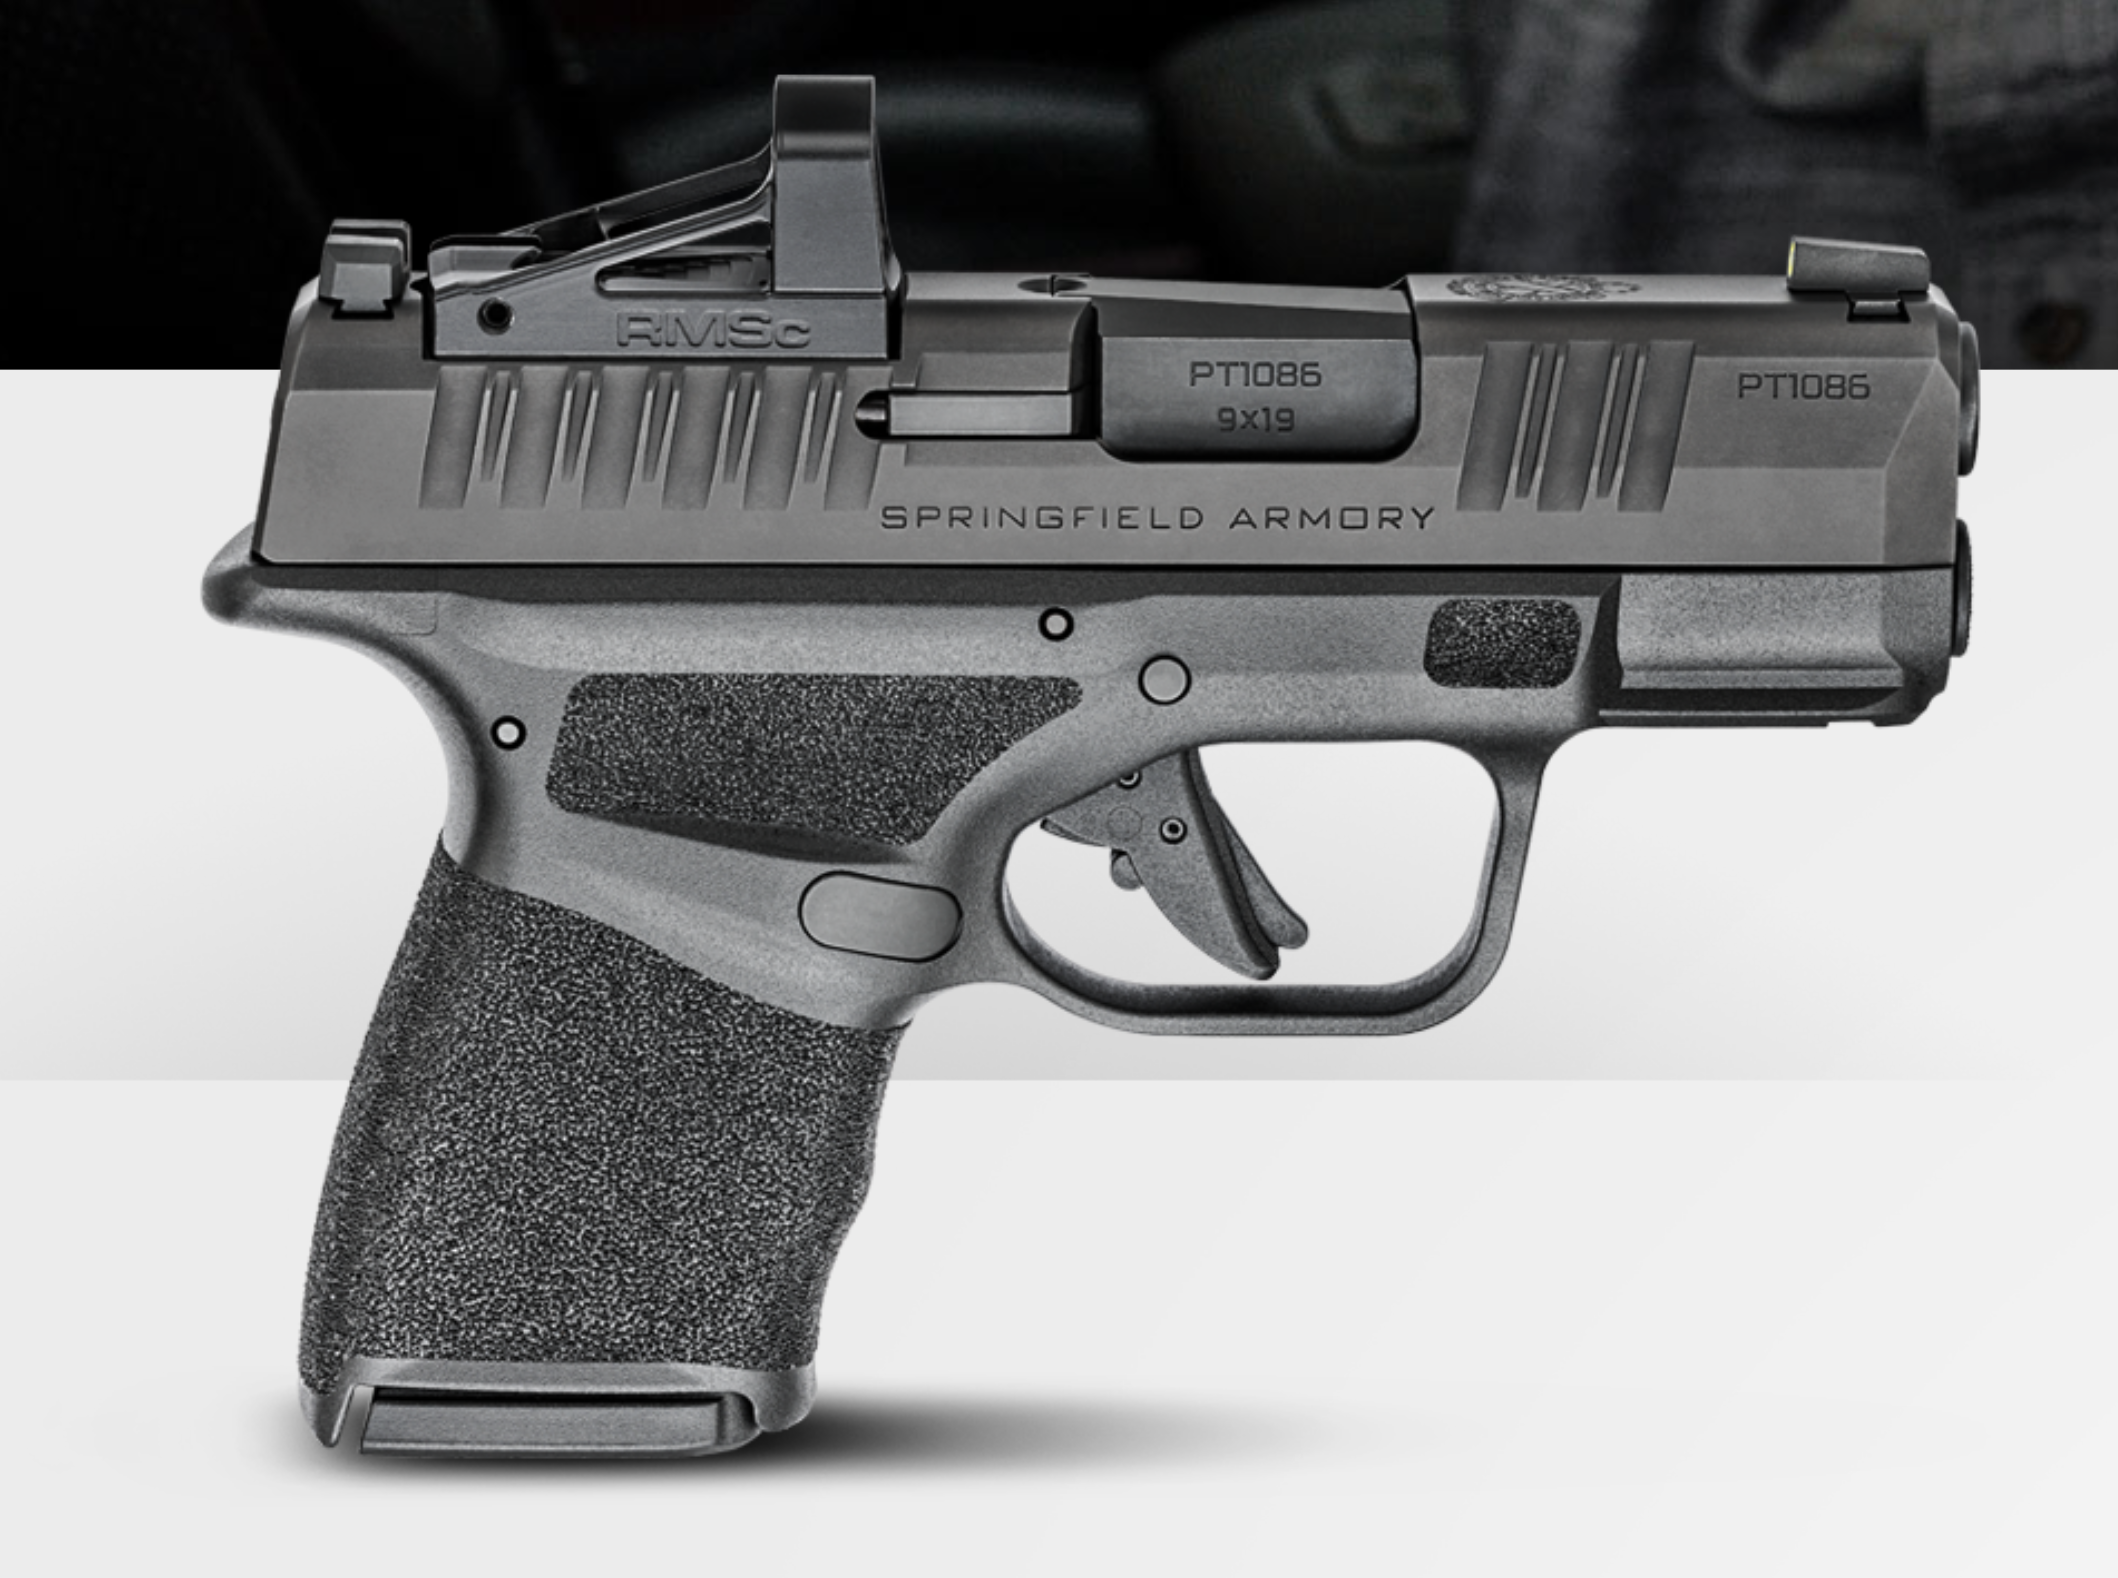 Breaking News: Here is the Springfield Armory Hellcat